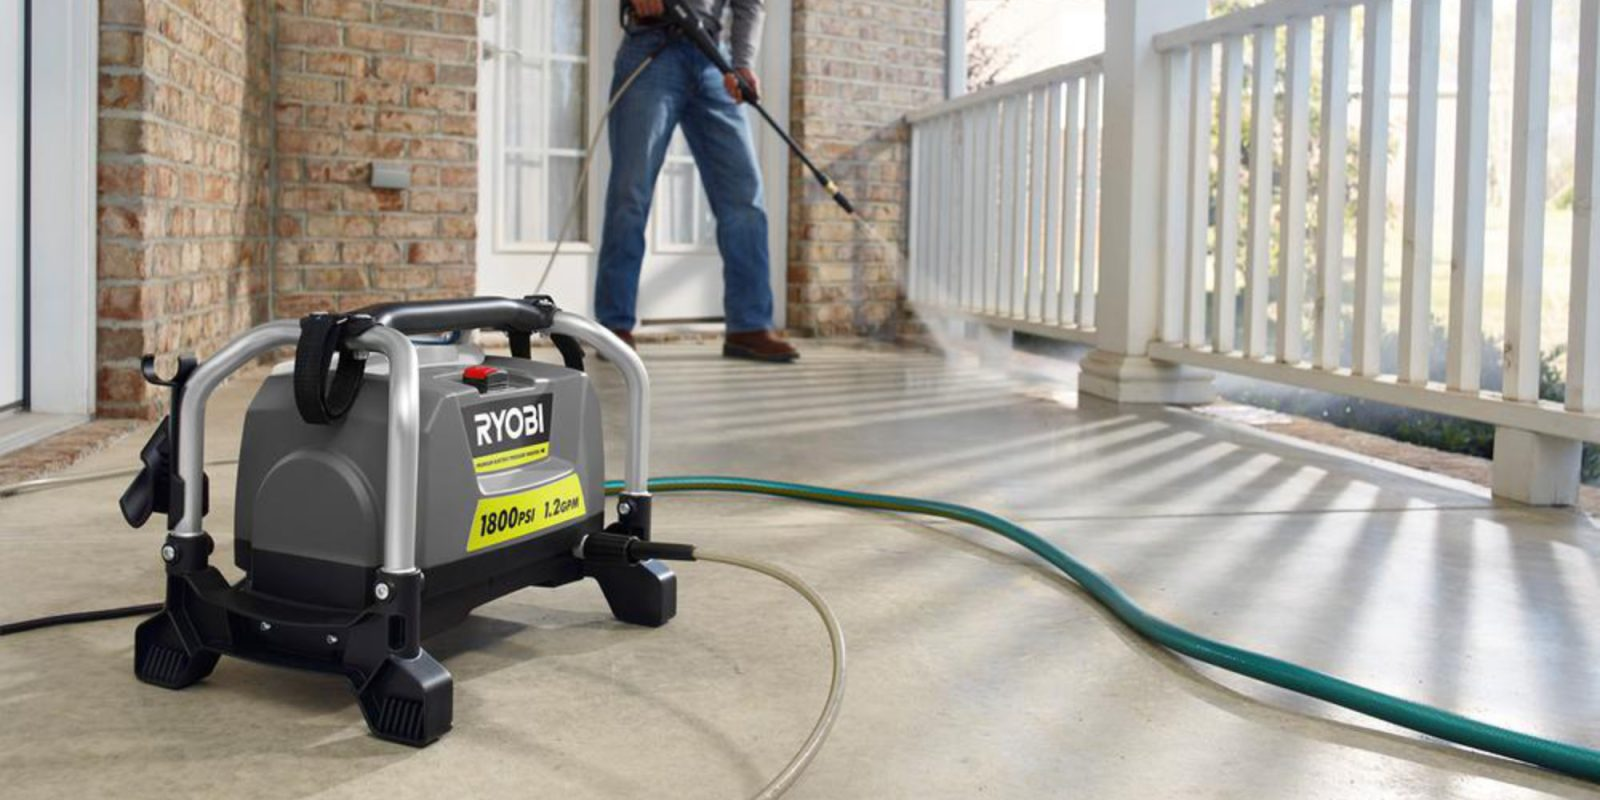 Clean it all w/ RYOBI's 1,800 PSI Electric Pressure Washer: $109 (Save $30)